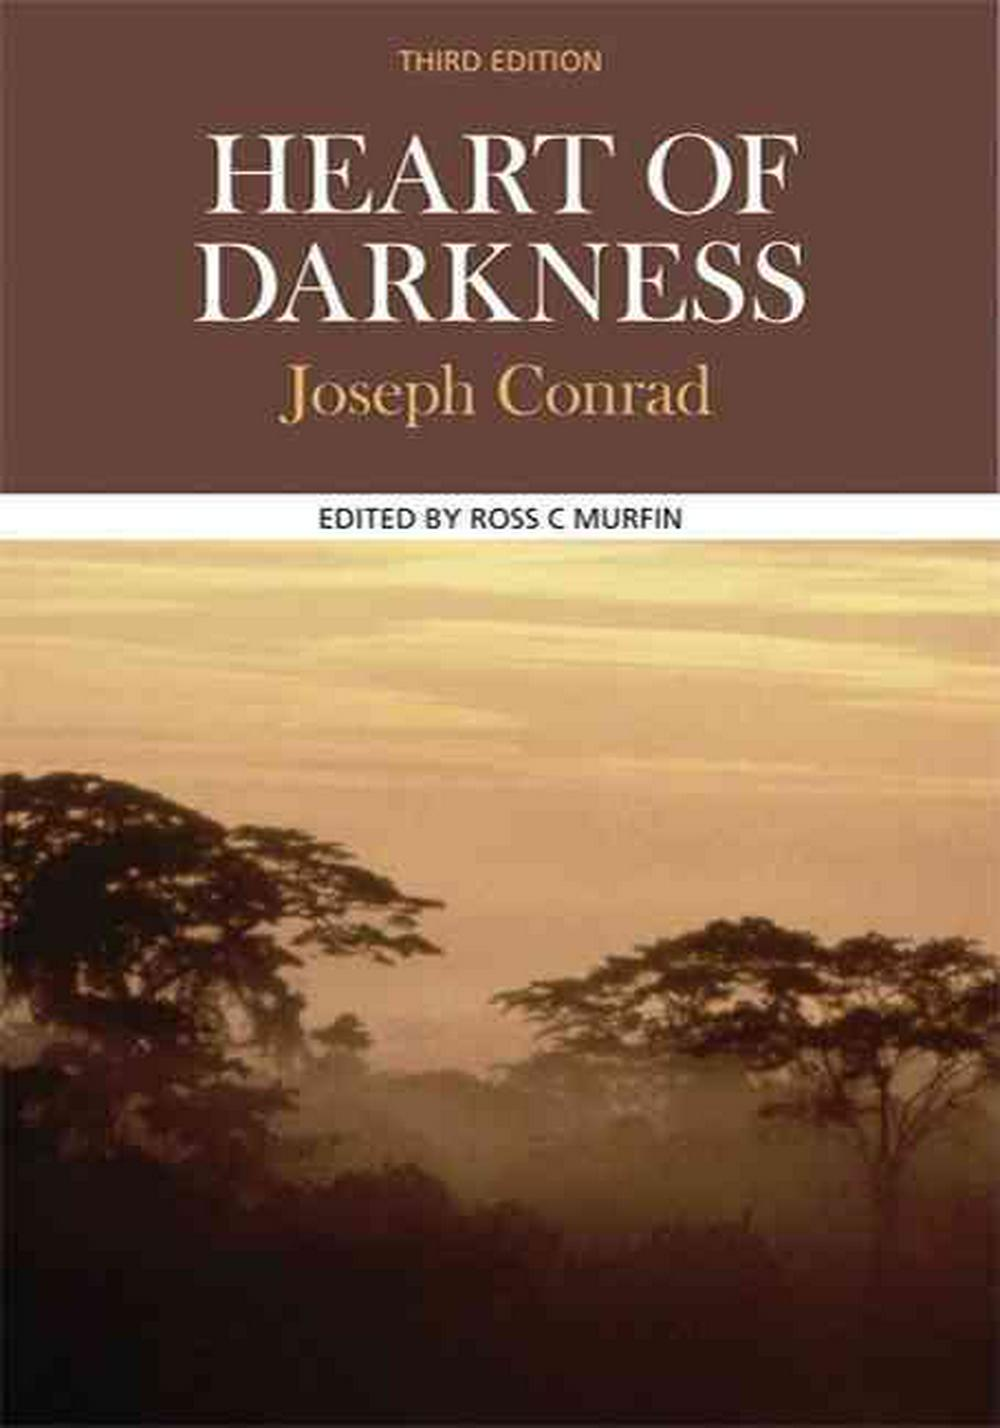 the illusions of human nature in heart of darkness by joseph conrad Transcript of heart of darkness allusions and symbols (cc) photo by theaucitron on flickr symbols it allows for a stark contrast between human nature in civilization and when it is unrestrained in nature.